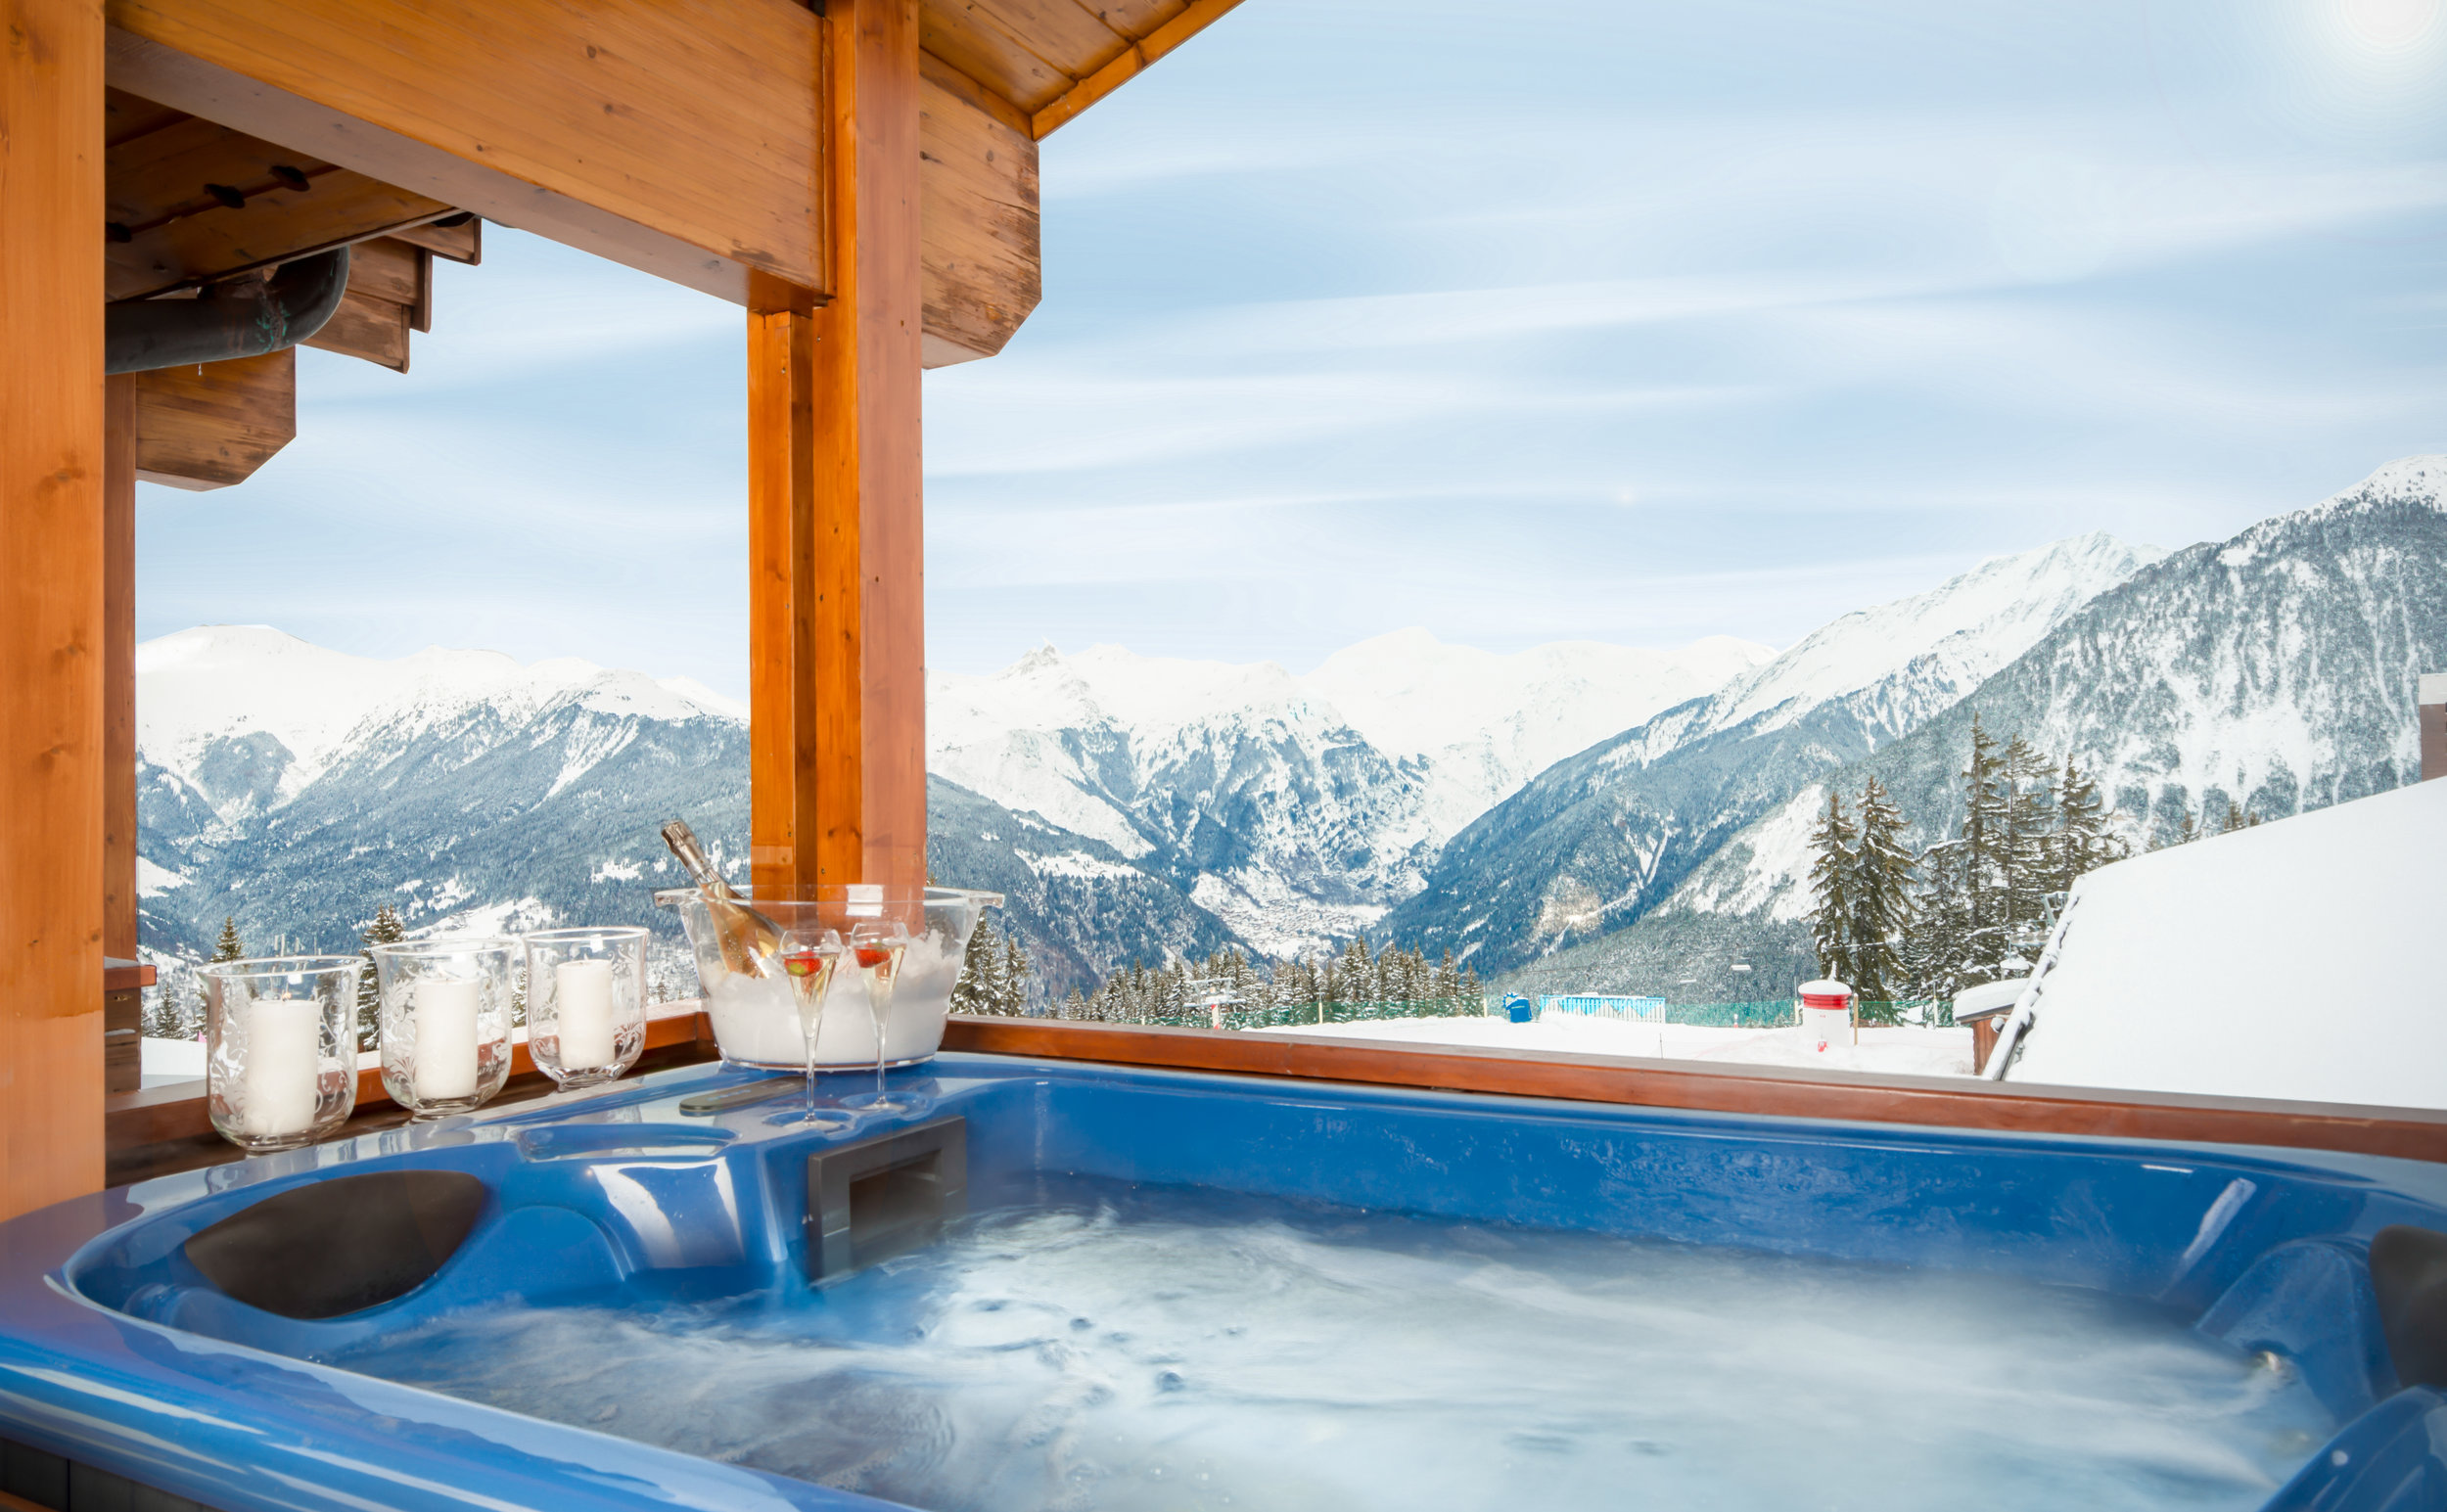 chalet-sweet-escape-spa-balcony-ski-in-ski-out-courchevel-1850